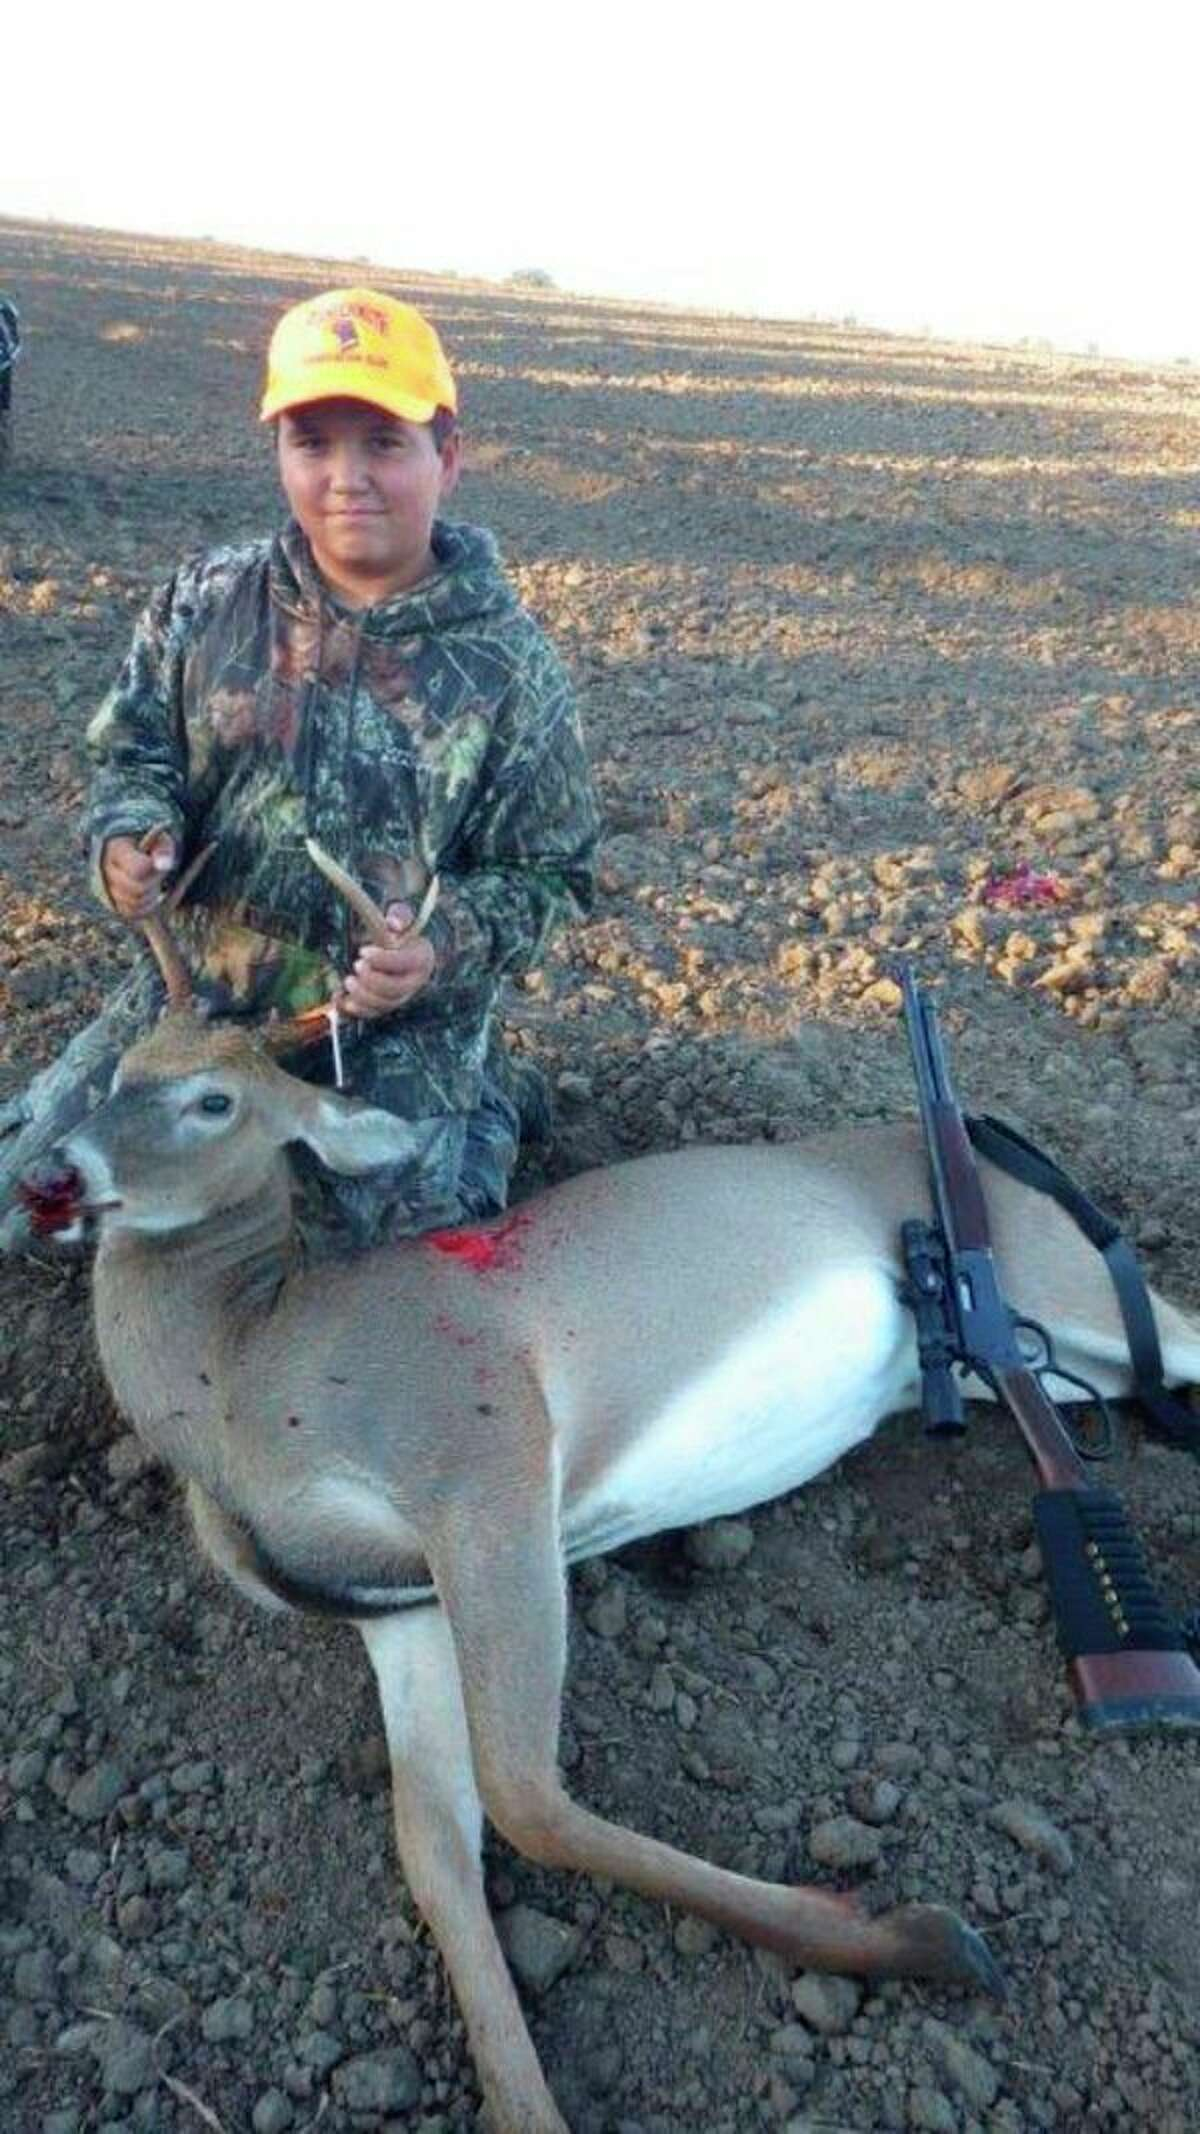 A proud 14-year-old Dale Skinner of Akronshows his first buck, a 2.5-year-old forkhorn taken during the 2018 Liberty Hunt, using a .44 Magnum HenryCarbine.His mentor/guide was Tom Lounsbury. (Tom Lounsbury/Hearst Michigan)